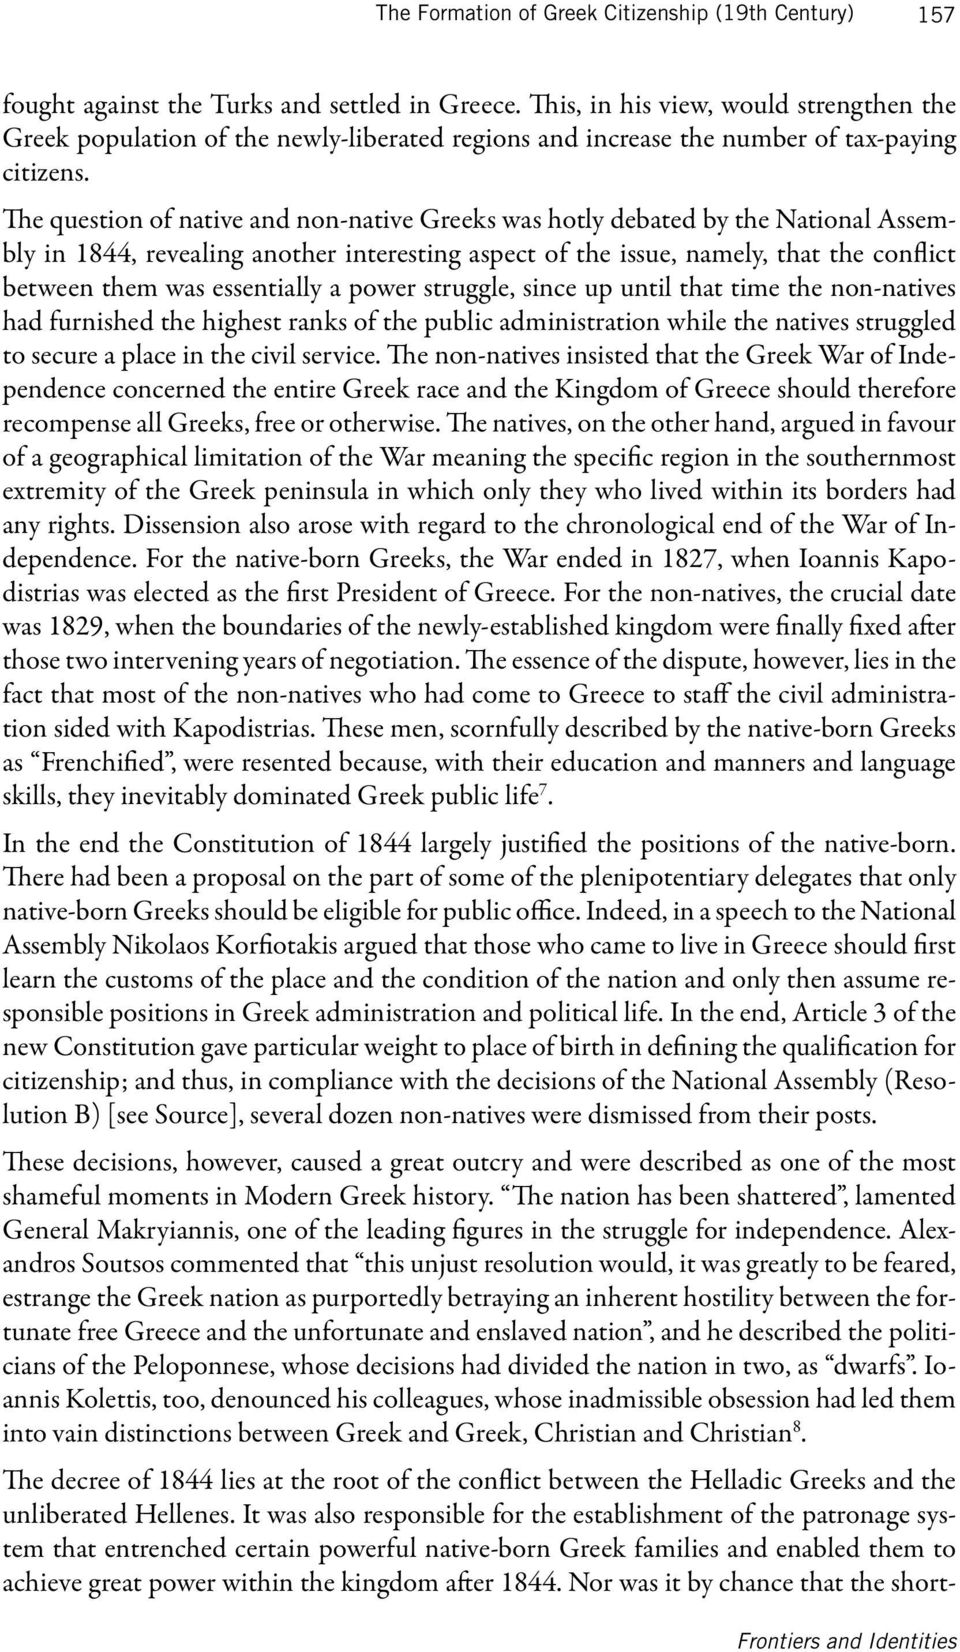 The question of native and non-native Greeks was hotly debated by the National Assembly in 1844, revealing another interesting aspect of the issue, namely, that the conflict between them was